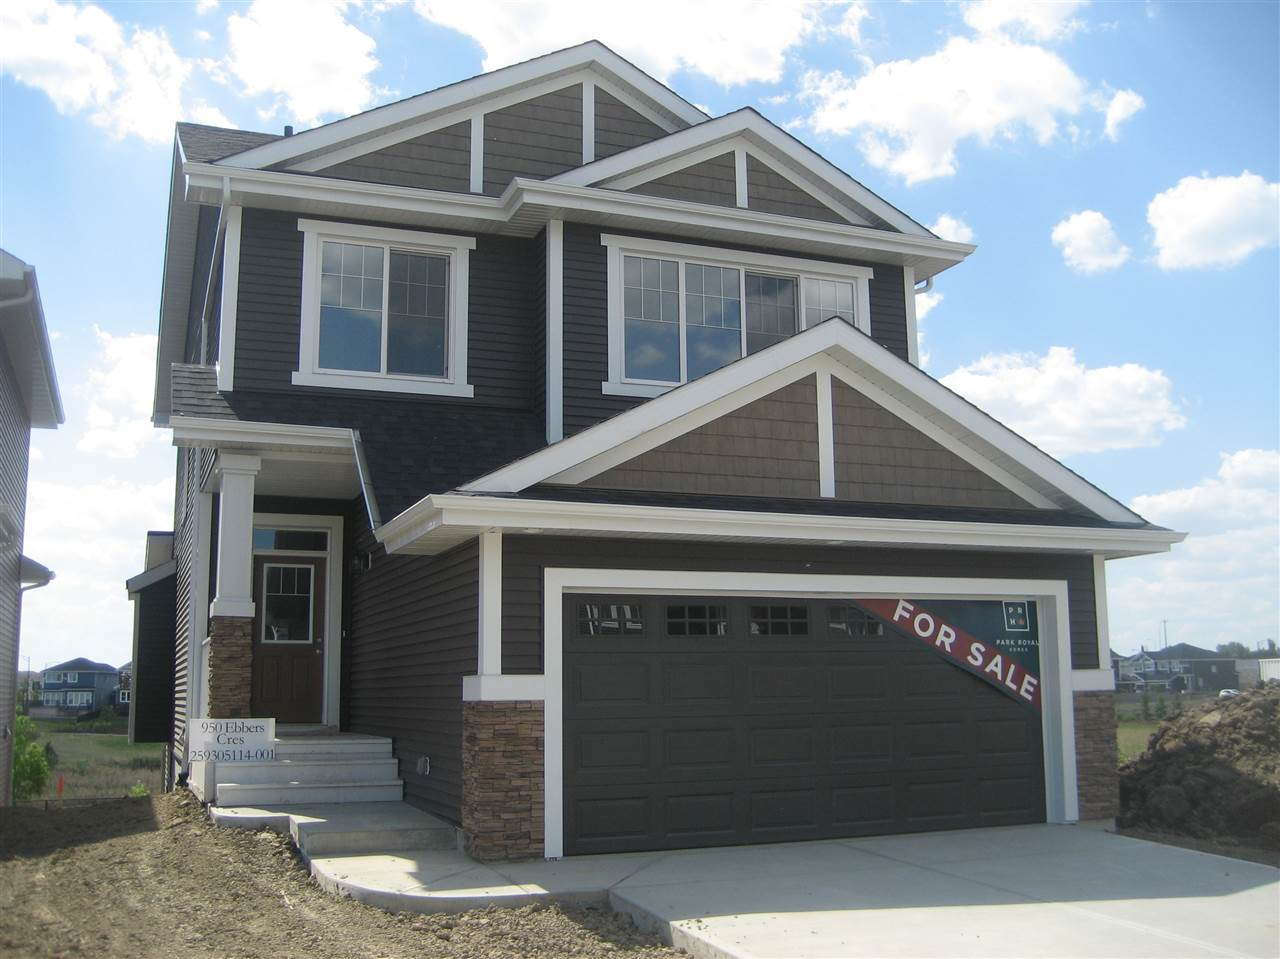 The Glamis Craftsman by Park Royal Homes. Unique two storey homes with walk out lower level backing onto park with south facing backyard. Open plan with engineered hardwood and ceramic tile flooring. 9 Foot ceiling on main. Open kitchen with large island, modern white cabinets, corner pantry and quartzite counters. Living room with gas fireplace. Patio doors of the nook to large deck with aluminum railing overlooking the park. Owners suite with tray ceiling, large ensuite with his and hers sink, walk in closet. Spacious walk in laundry room. Bonus room with tray ceiling (10ft ceiling) over the garage. Excellent size secondary bedrooms. Refundable landscape deposit due on closing. Taxes only partially assessed. Price incl. GST. Price incl. $3200.00 appliance gift certificate.